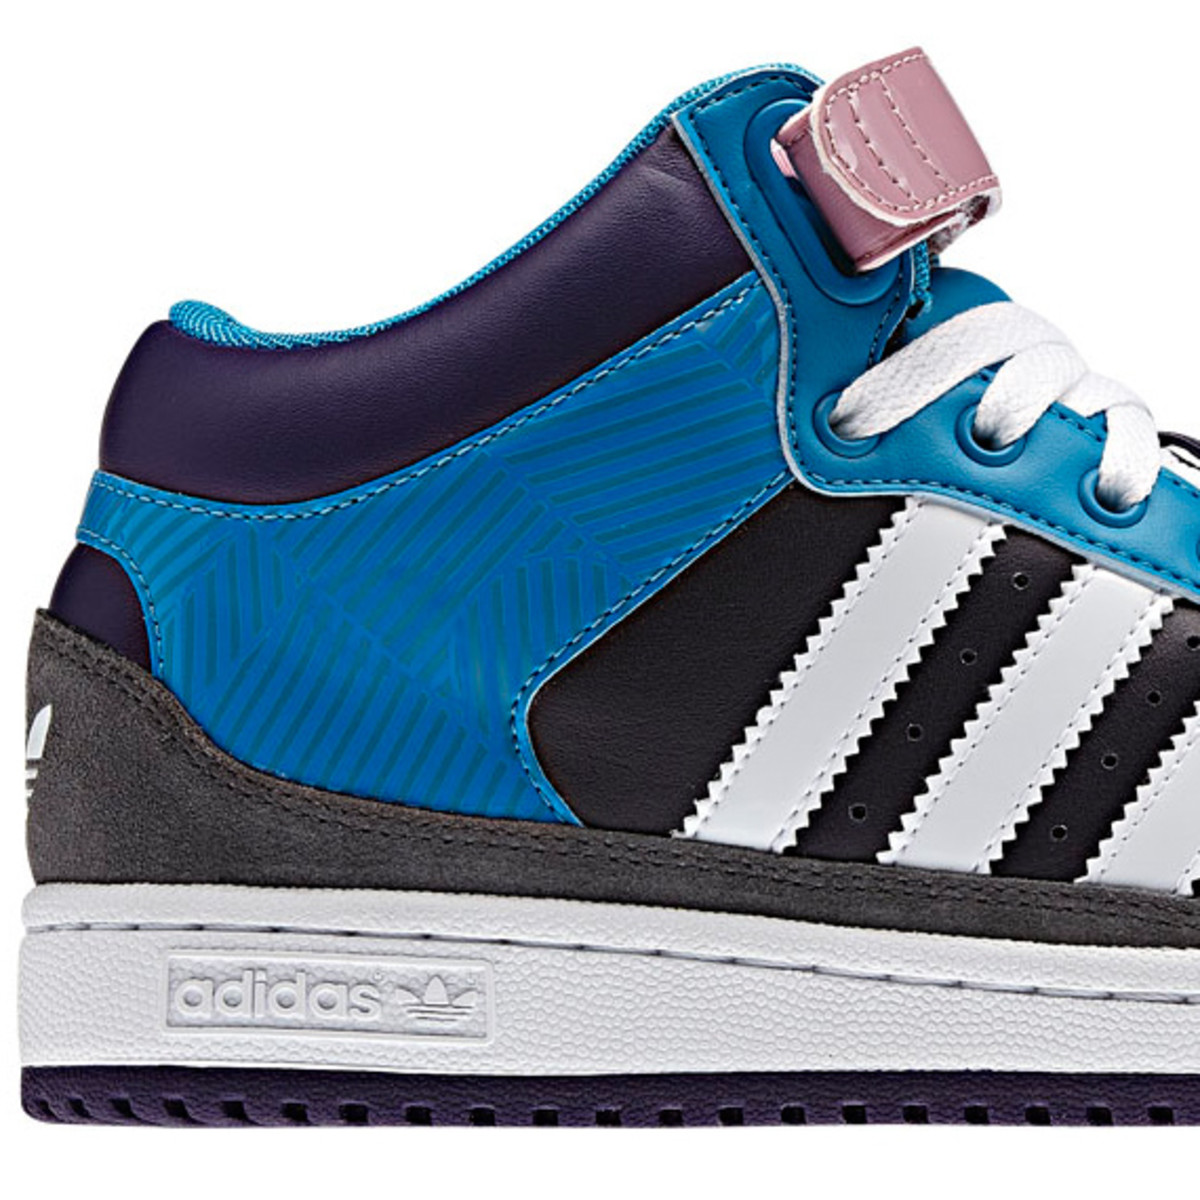 adidas-originals-st-collection-sneakers-02